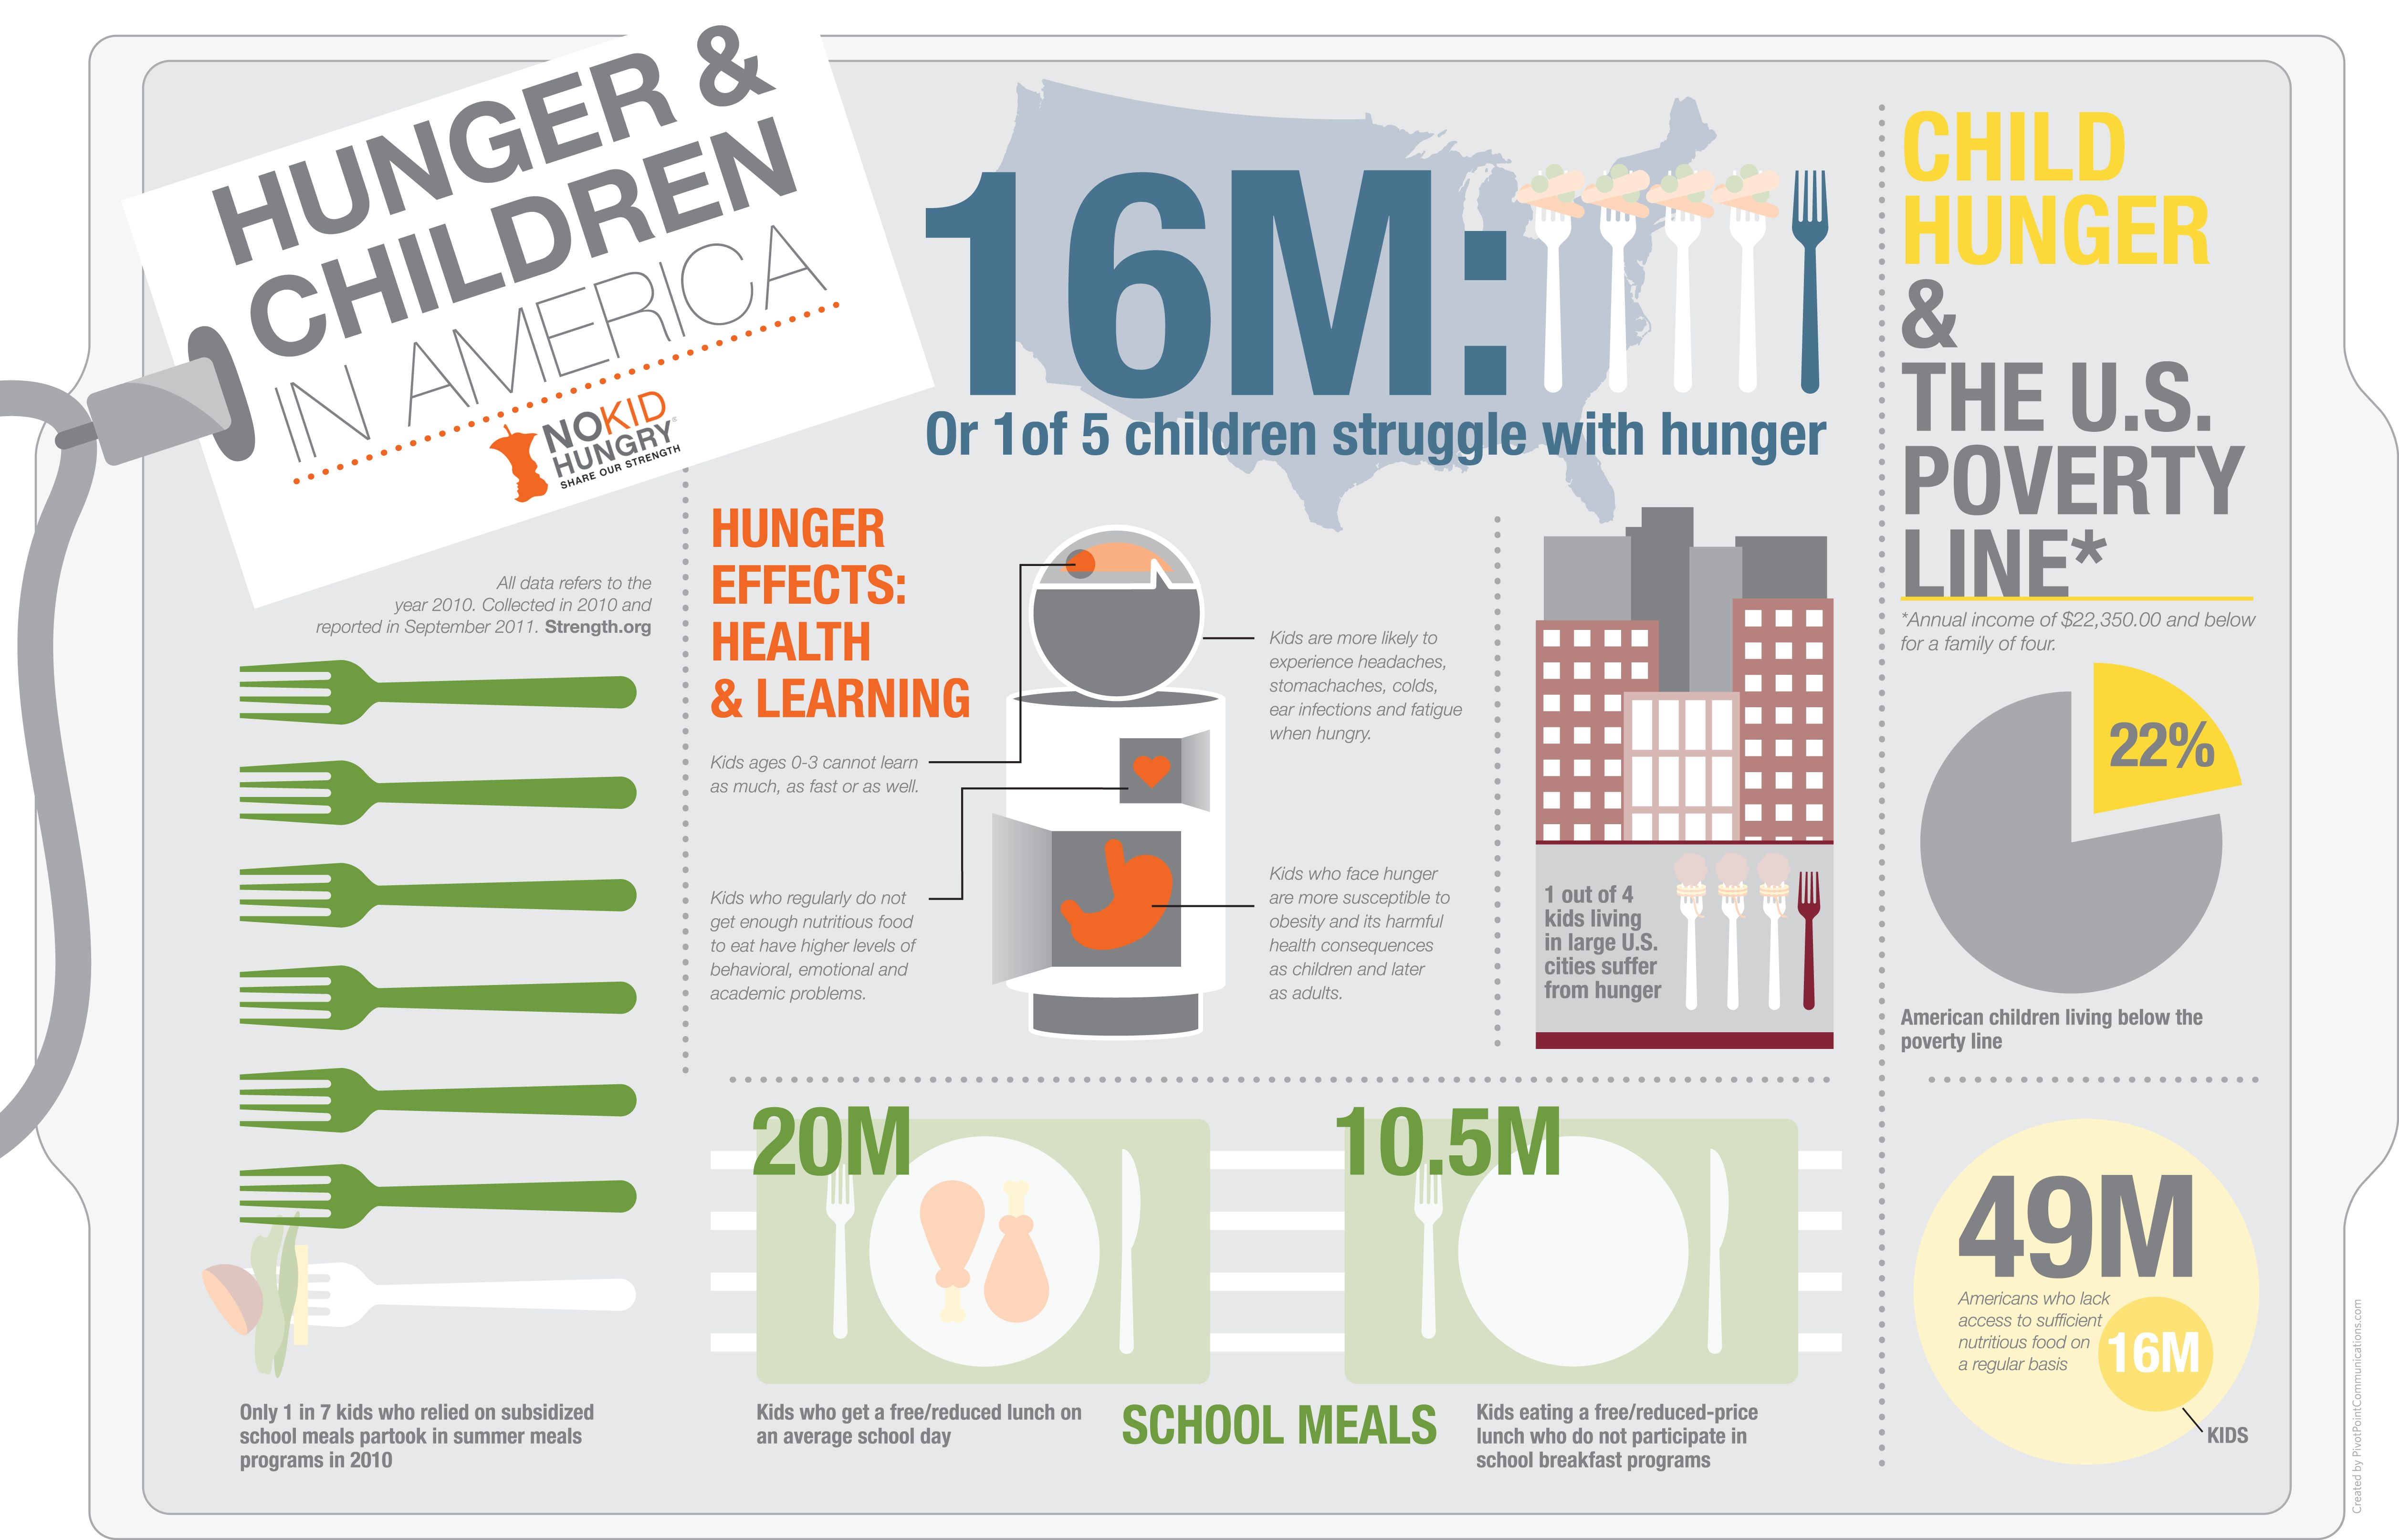 Another interesting infographic on hunger and children in ...